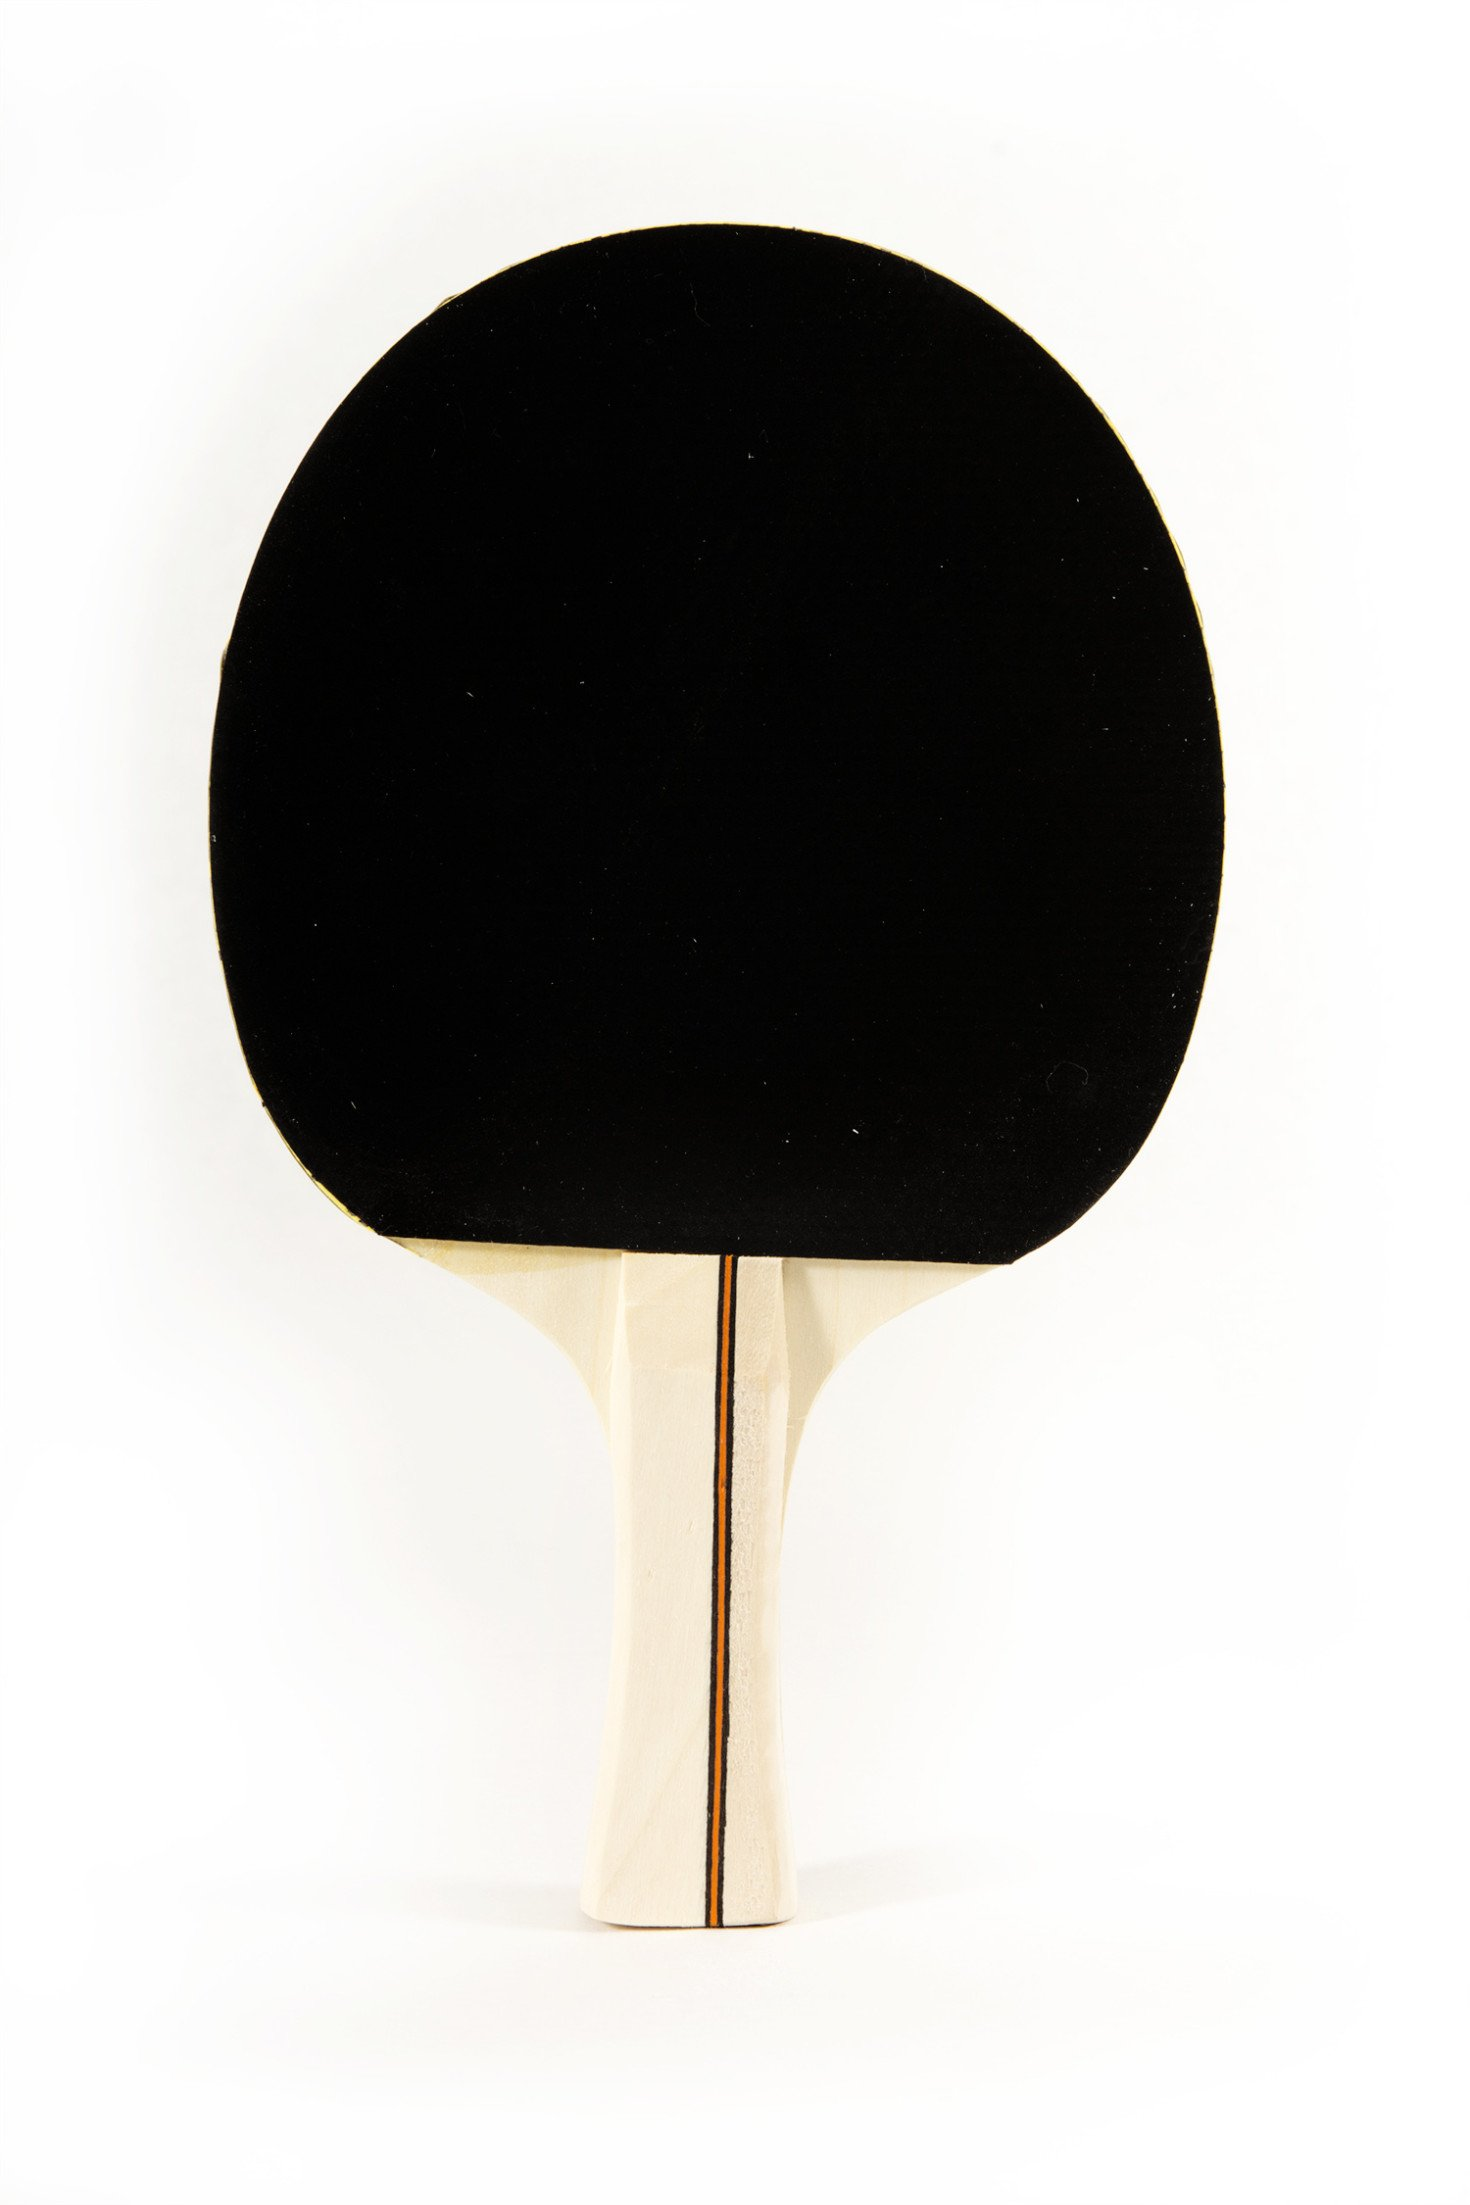 STIGA Performance 4-Player Table Tennis Racket Set with Inverted Rubber for Increased Ball Control and Added Spin by STIGA (Image #11)